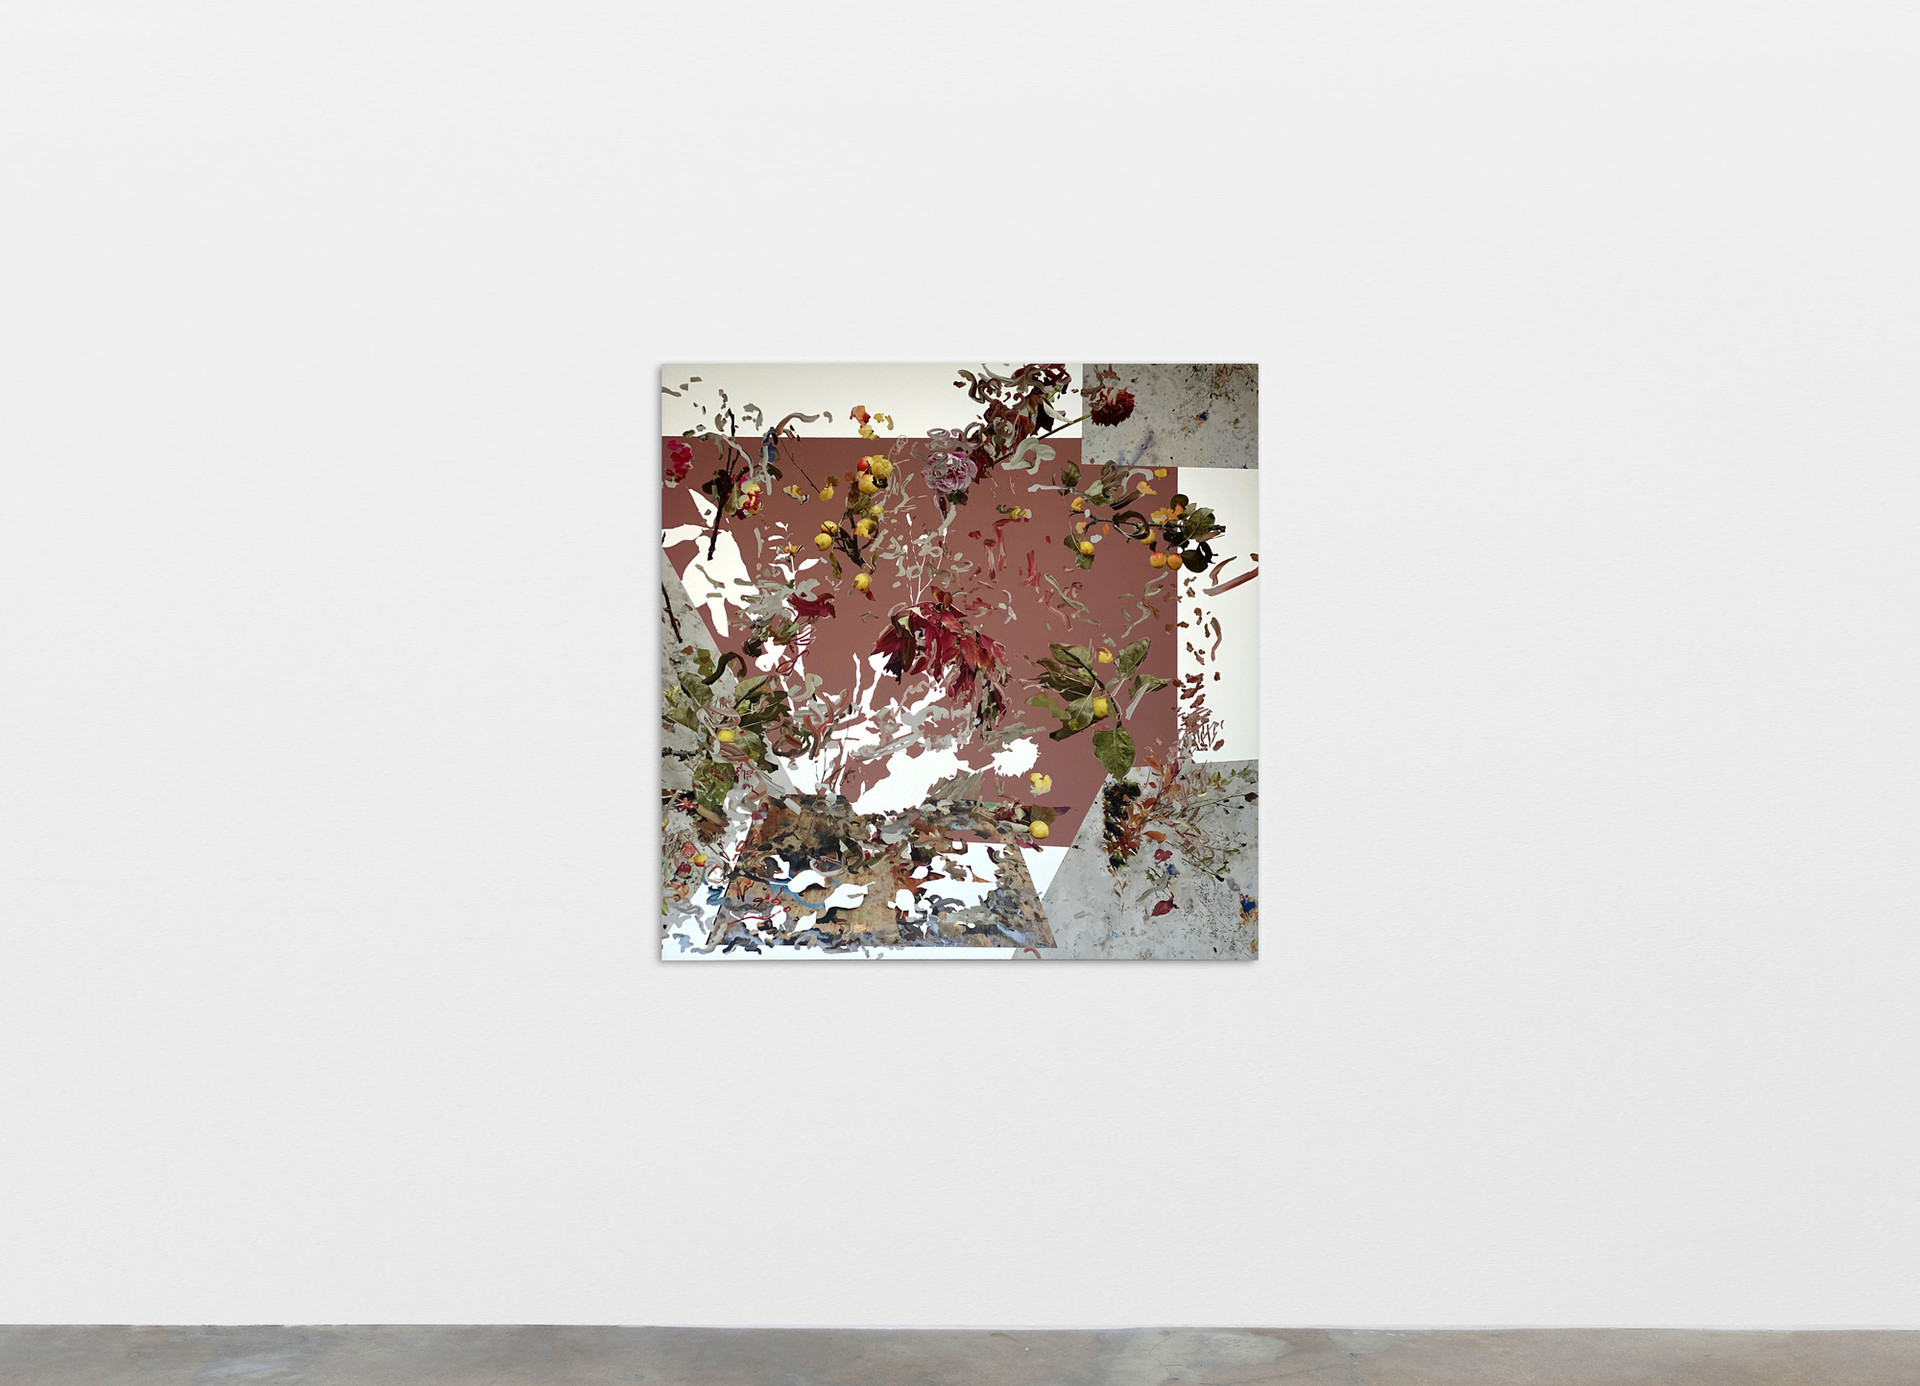 Petra Cortright download_starcraft_games+diablo2+diablo+downloads, 2020 Digital painting on anodized aluminum 83.82 x 83.82 cm 33 x 33 in